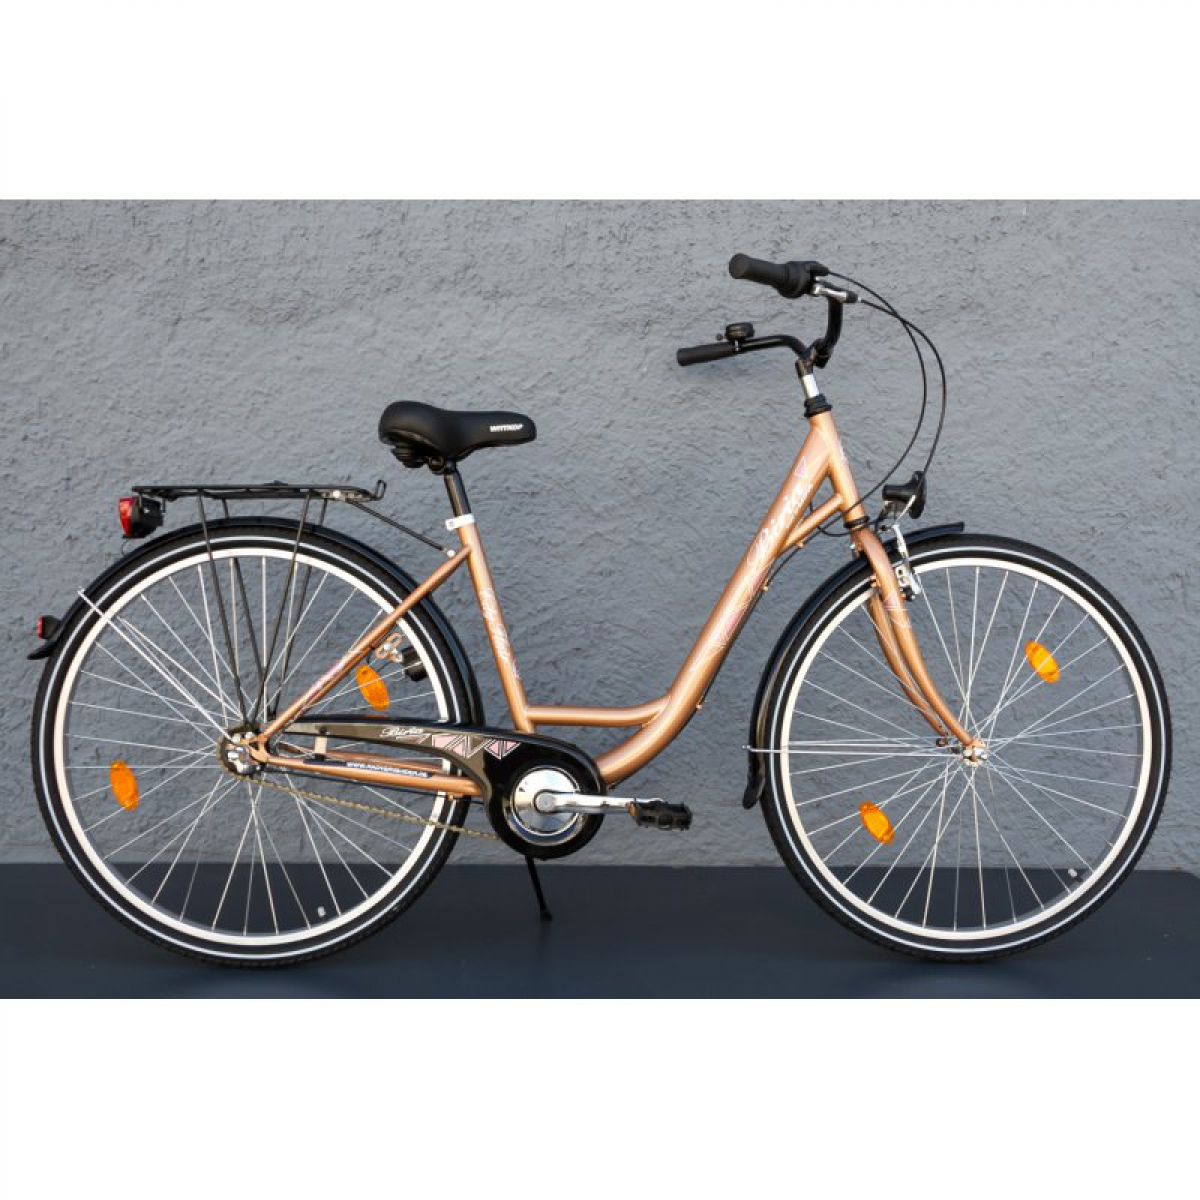 28 zoll damen fahrrad biria mifa city bike shimano 3 gang r cktritt gold ihr fahrrad online. Black Bedroom Furniture Sets. Home Design Ideas